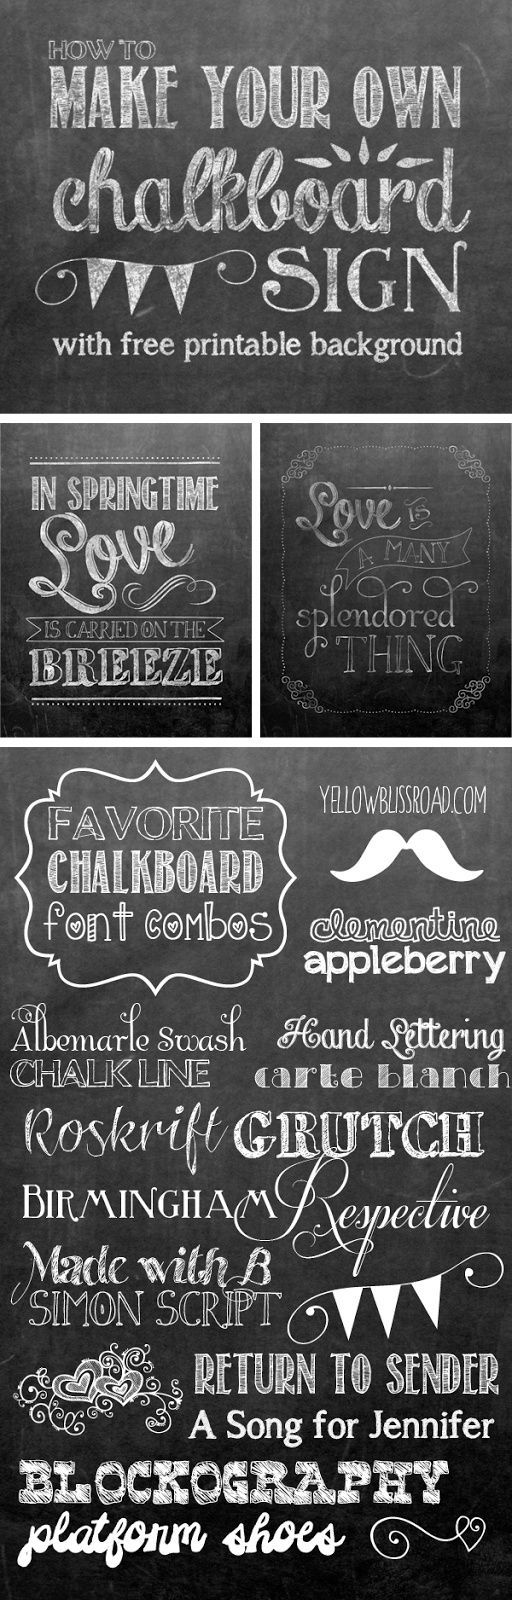 Tips for Making Your Own Chalkboard Sign, Chalkboard Font Combos, and a Free Printable Background!! | http://phonewallpaperideas.blogspot.com